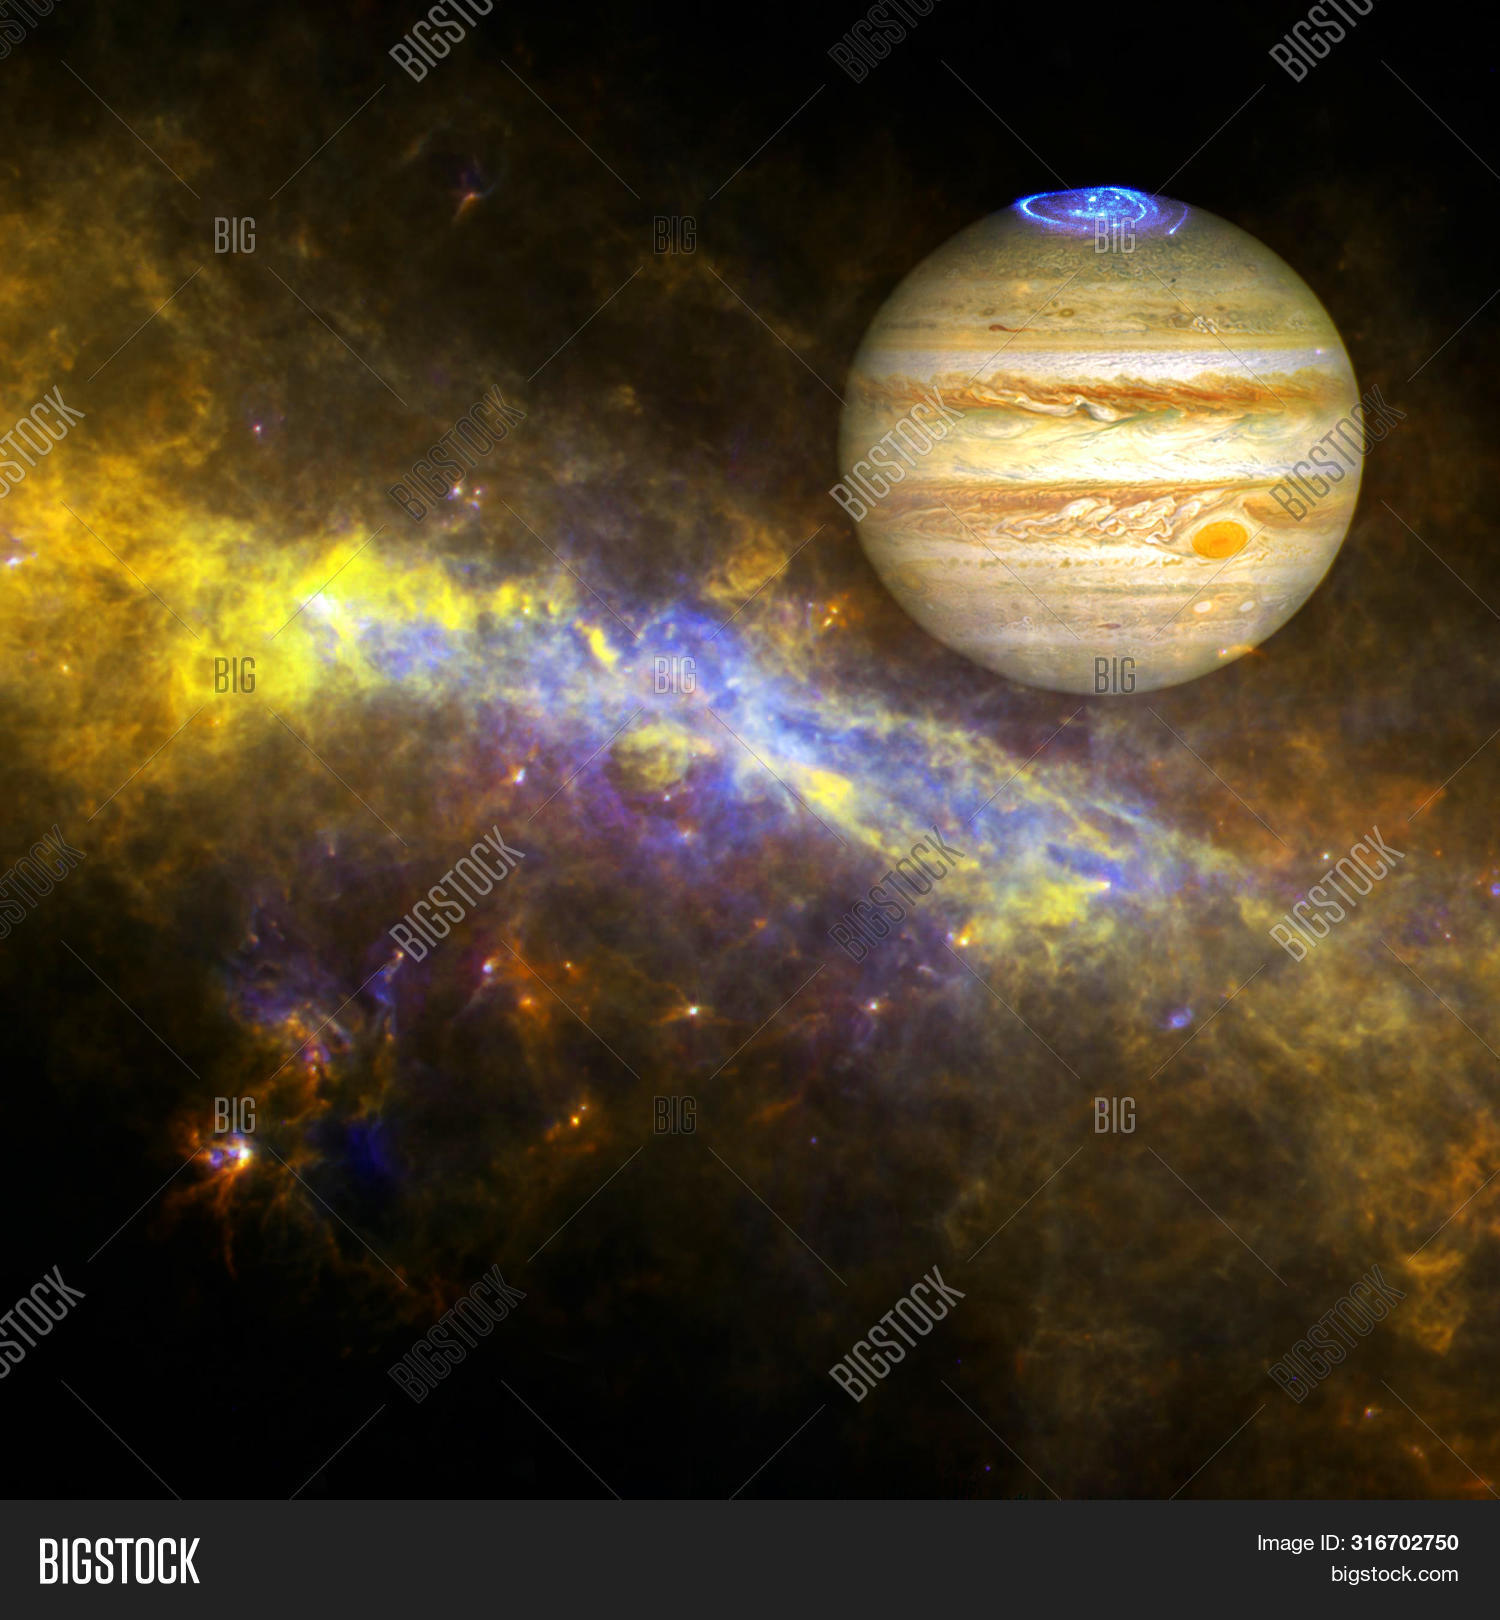 Planet Jupiter In The Colorful Starry Universe. Elements Of This Image Furnished By Nasa.